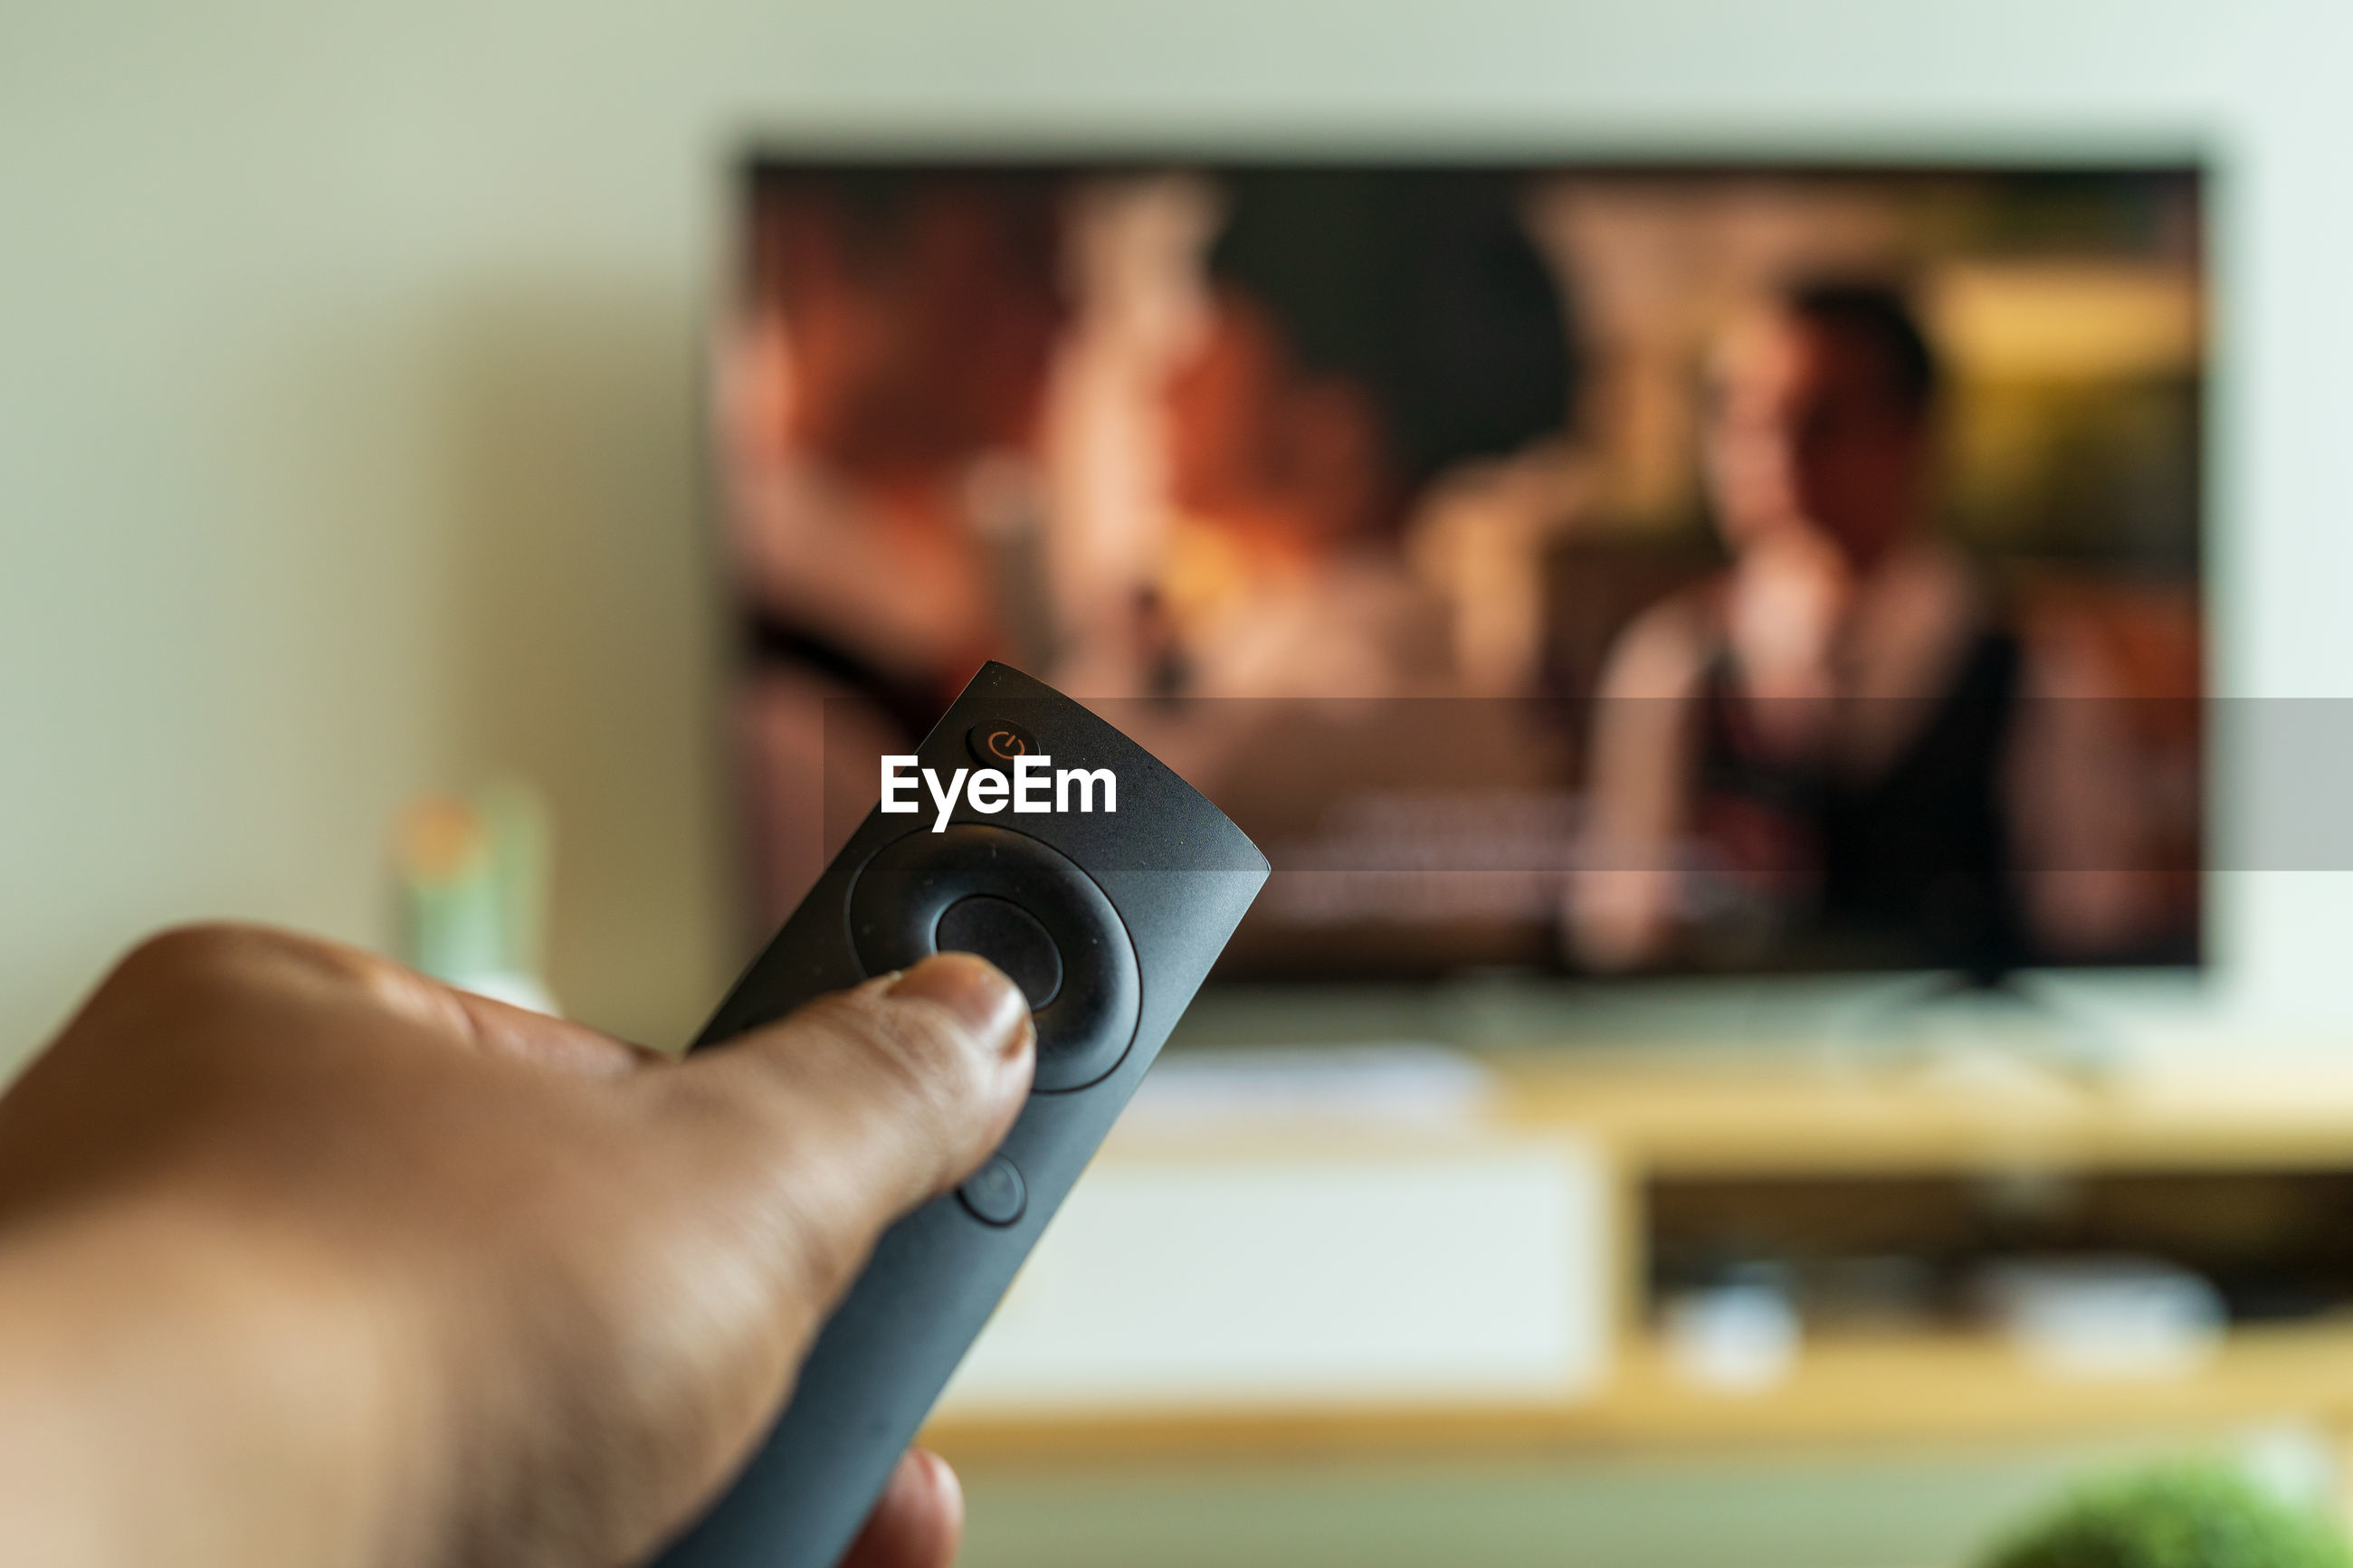 Cropped hand of person holding remote control while watching tv